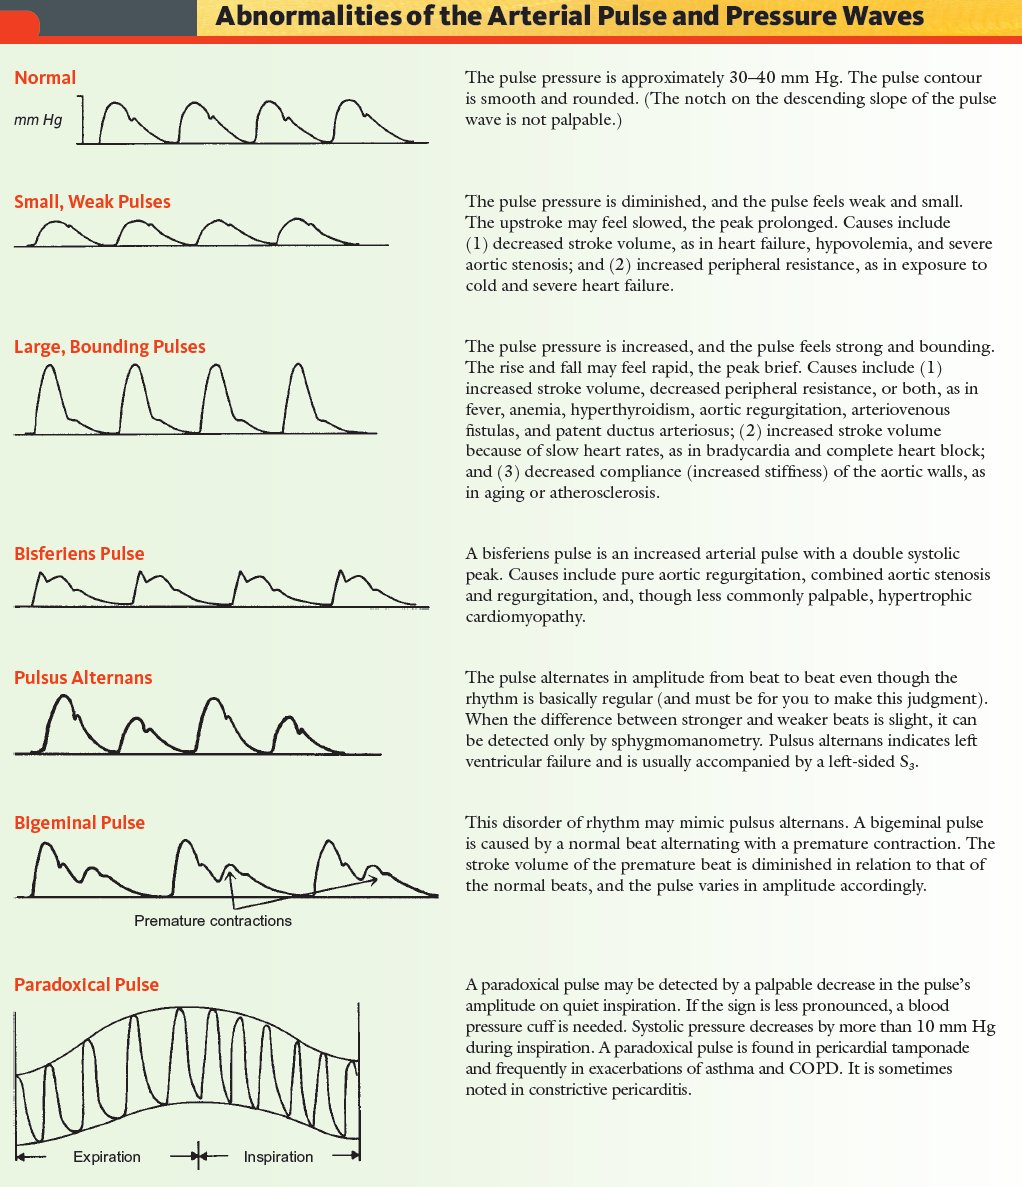 Abnormalities Of The Arterial Pulse And Pressure Waves Br Small